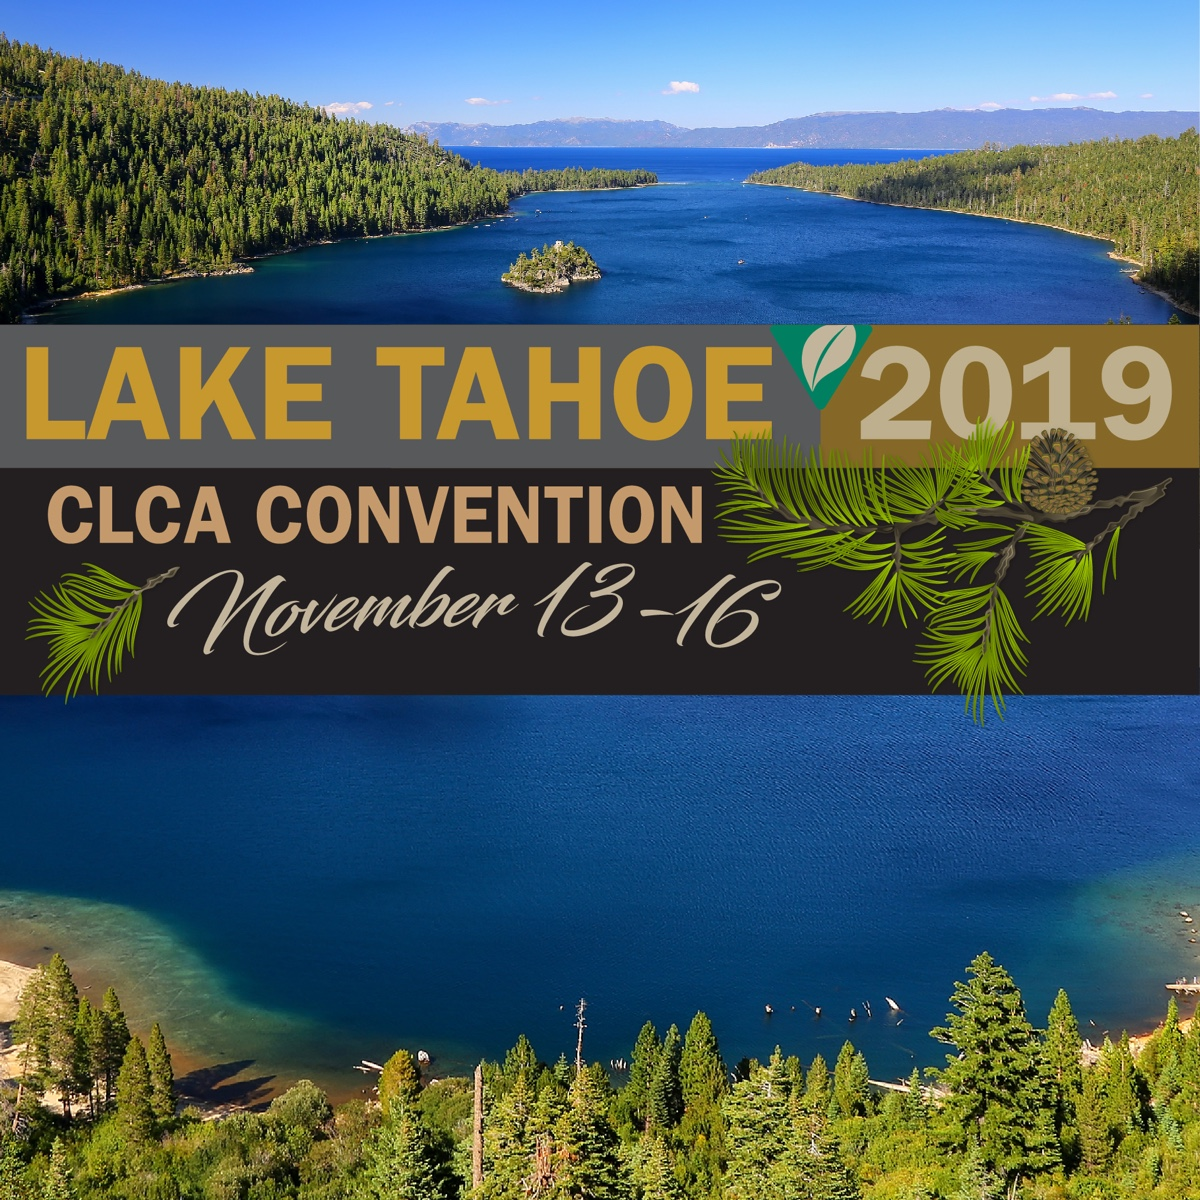 CLCA's 2019 Annual Convention will be held in Lake Tahoe November 12-16